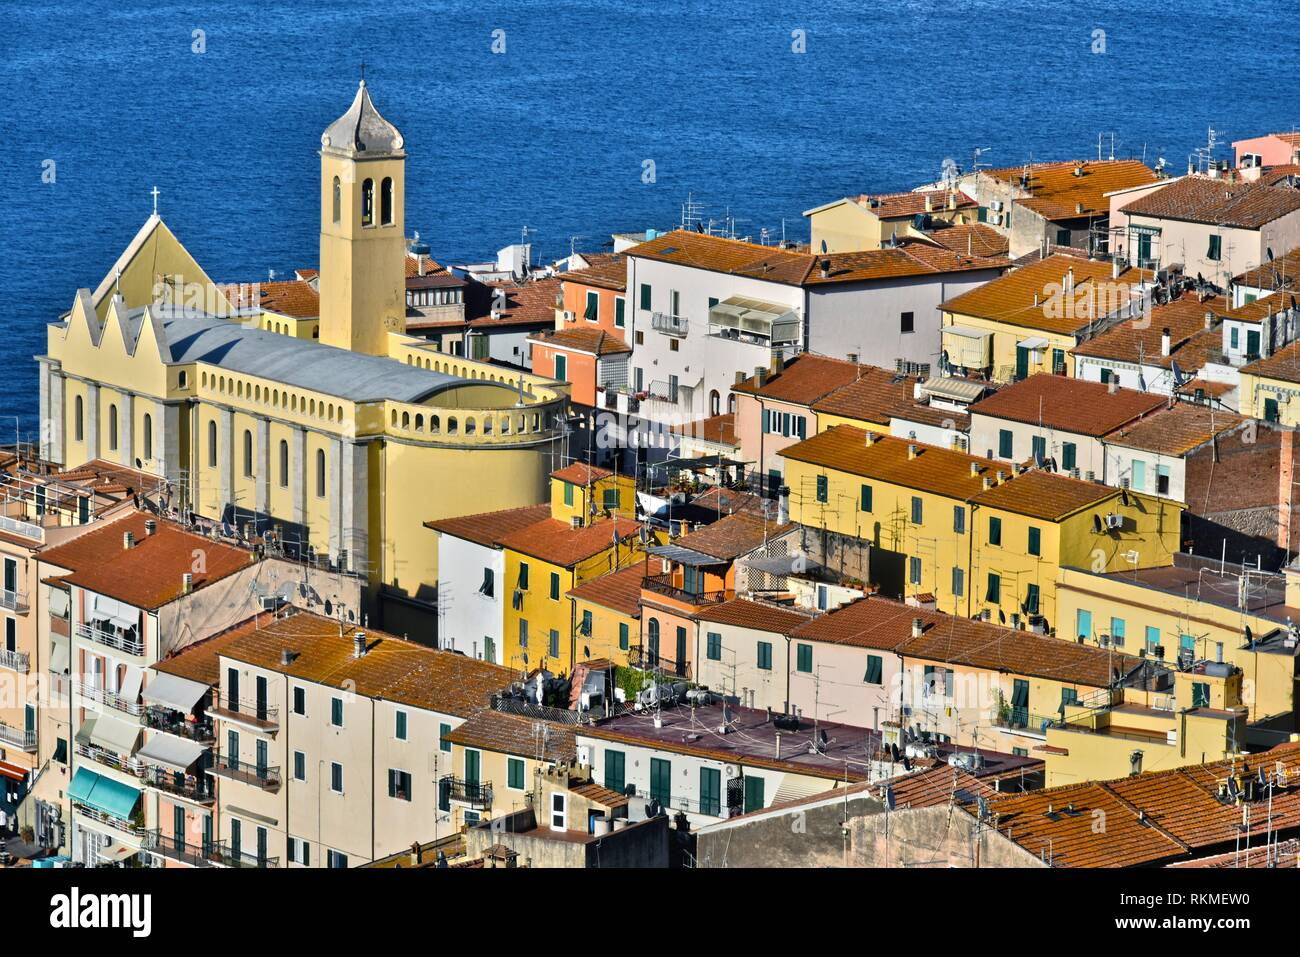 City of Porto Santo Stefano in the Province of Grosseto, Tuscany, Italy. - Stock Image